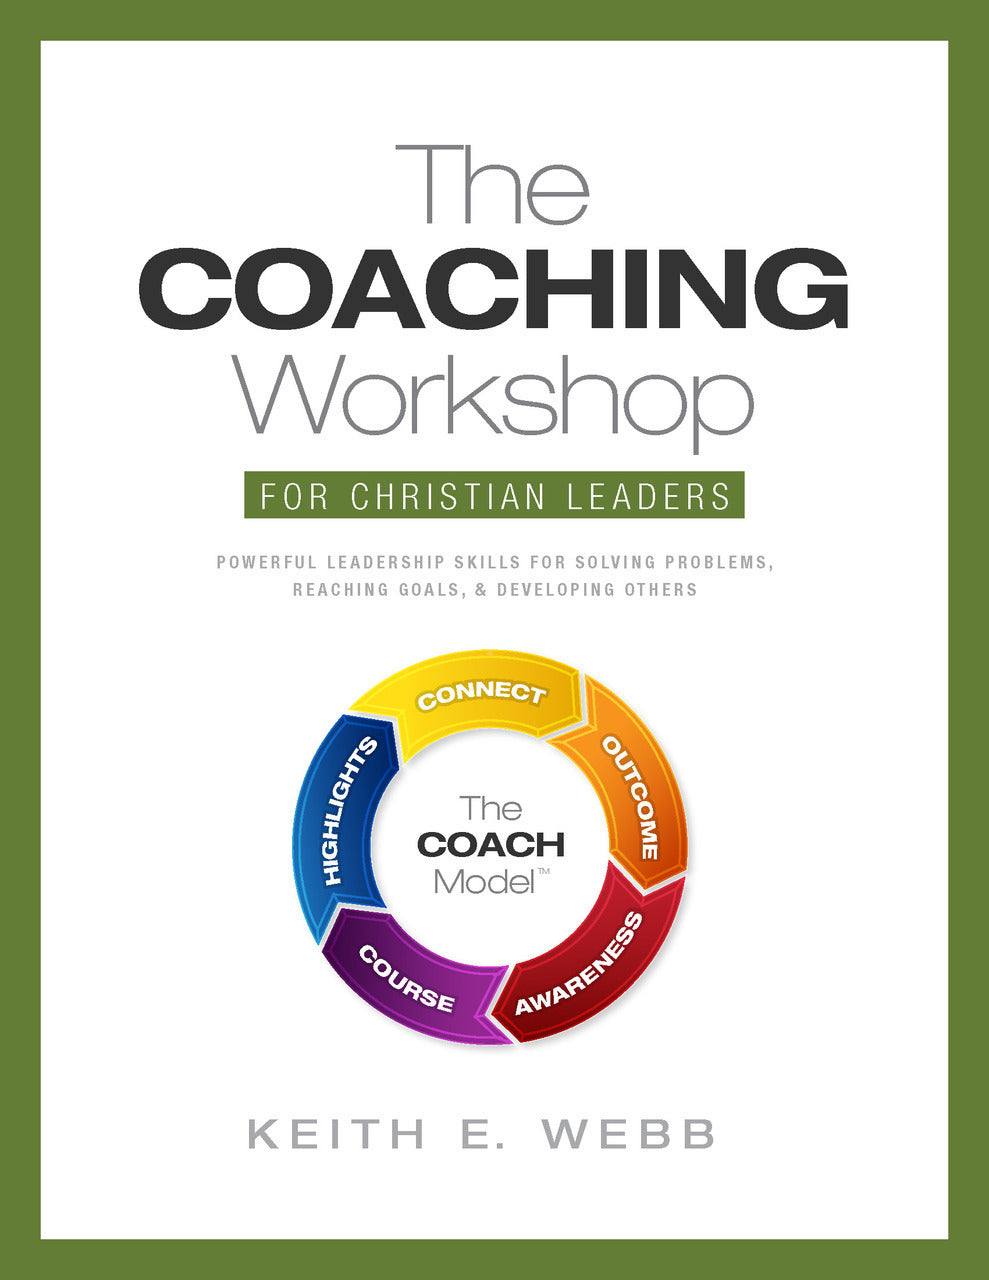 COACHING Workshop for Christian Leaders License